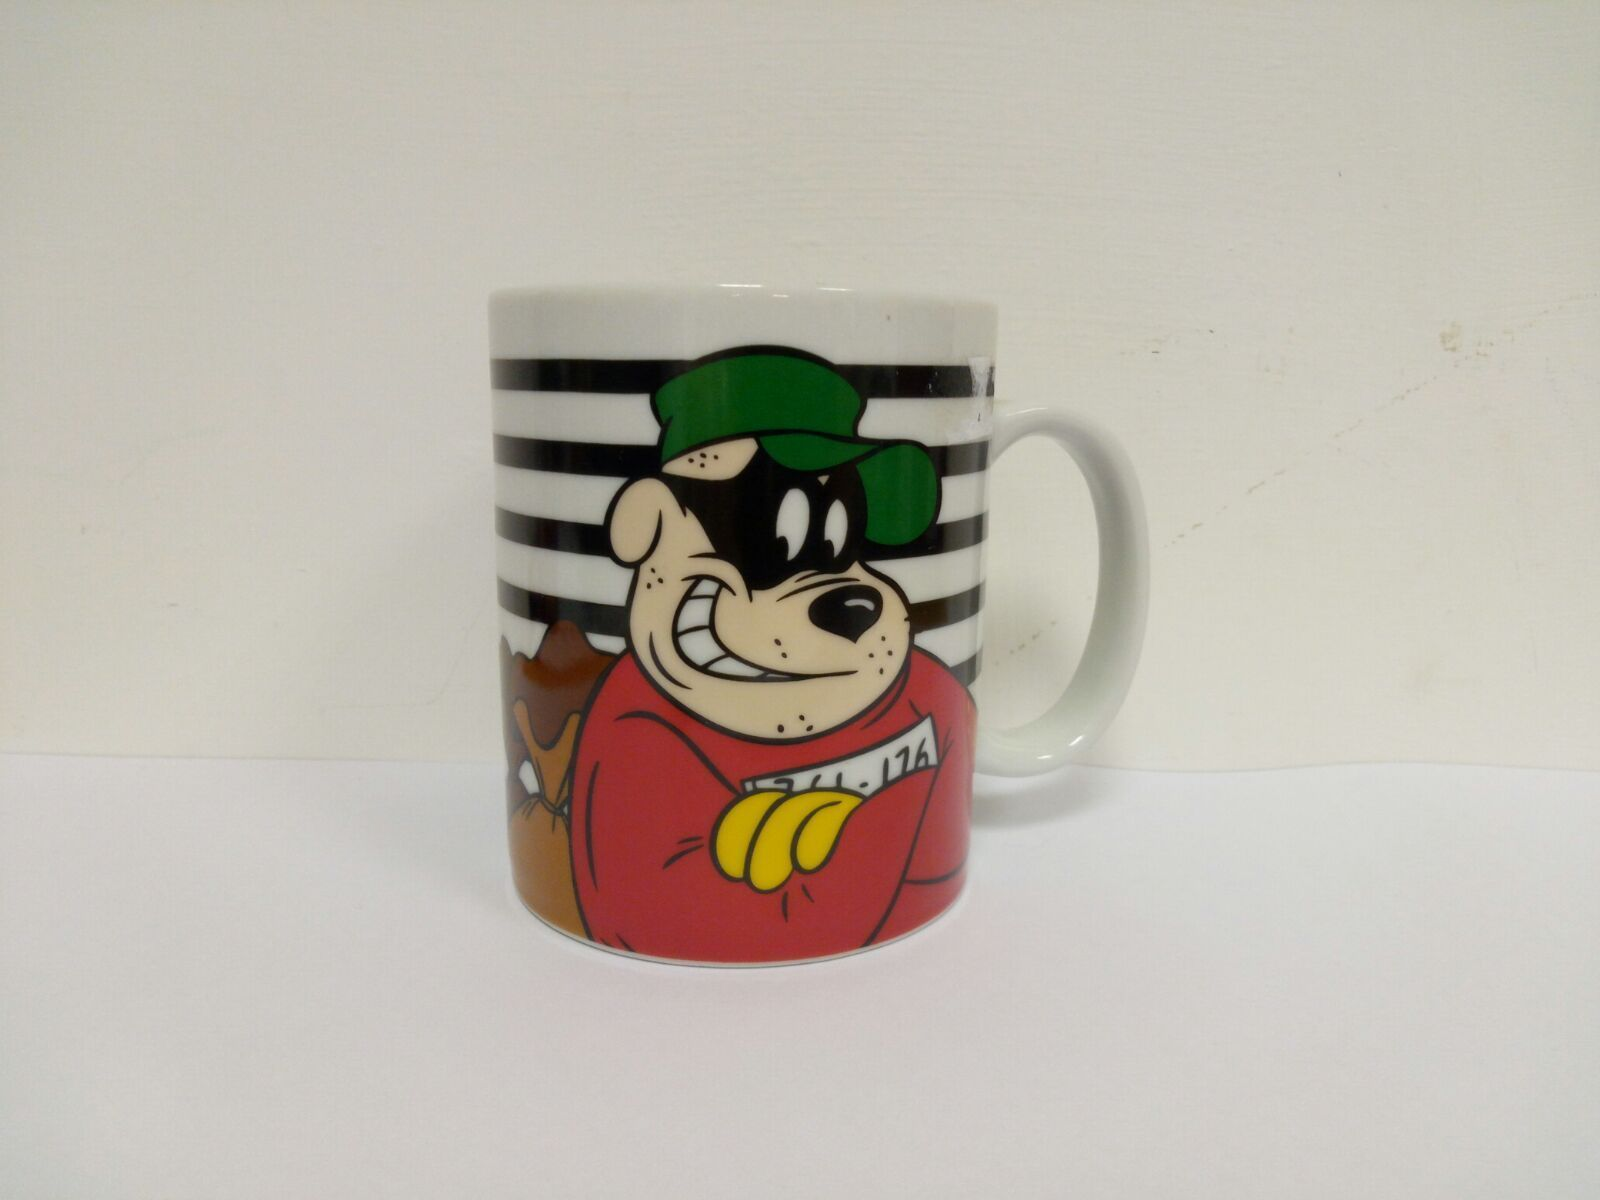 Another Beagle Boys Coffee Mug Mugs Beagle Coffee Mugs